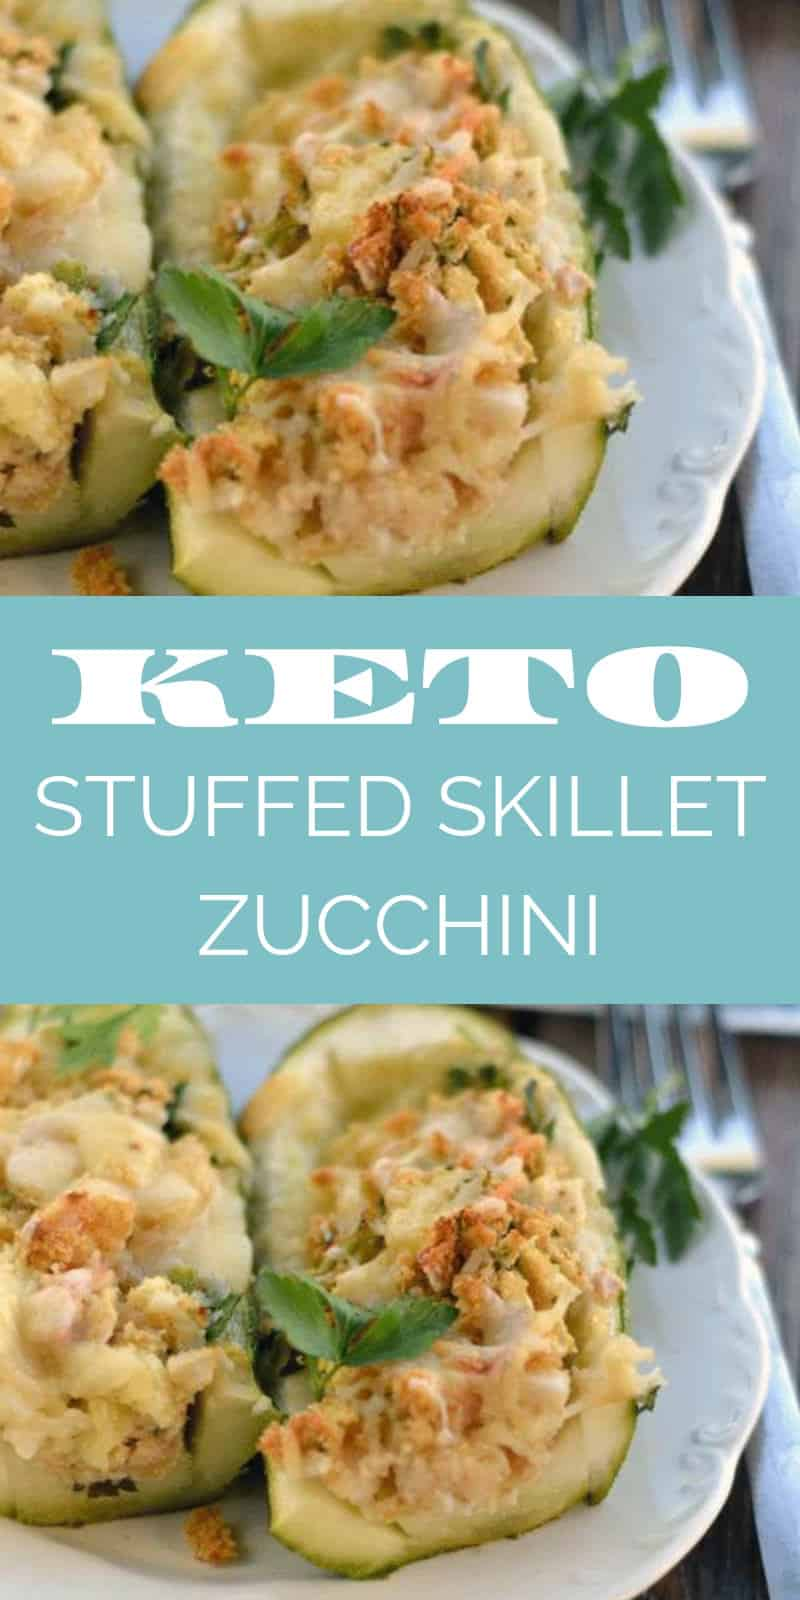 This skillet stuffed zucchini with crab and cheese is to die for! You are going to love how easy this keto recipe is to make and how delicious it tastes!